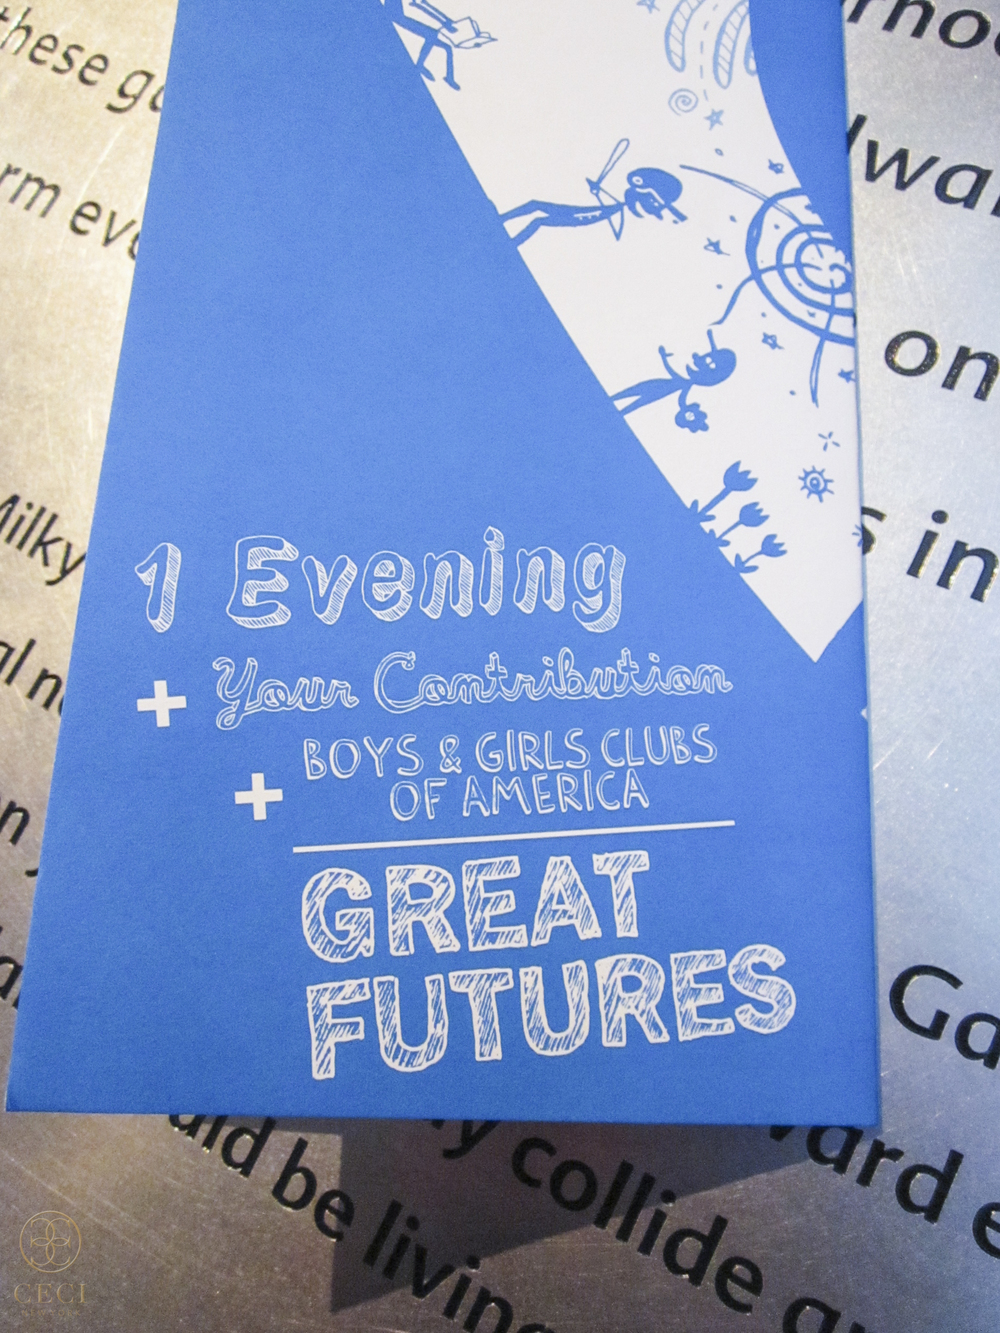 ceci-new-york-gives-back-boys-and-girls-club-of-america-great-futures-gala-2011-invitations-design-paper-accessories-signage-3.jpg